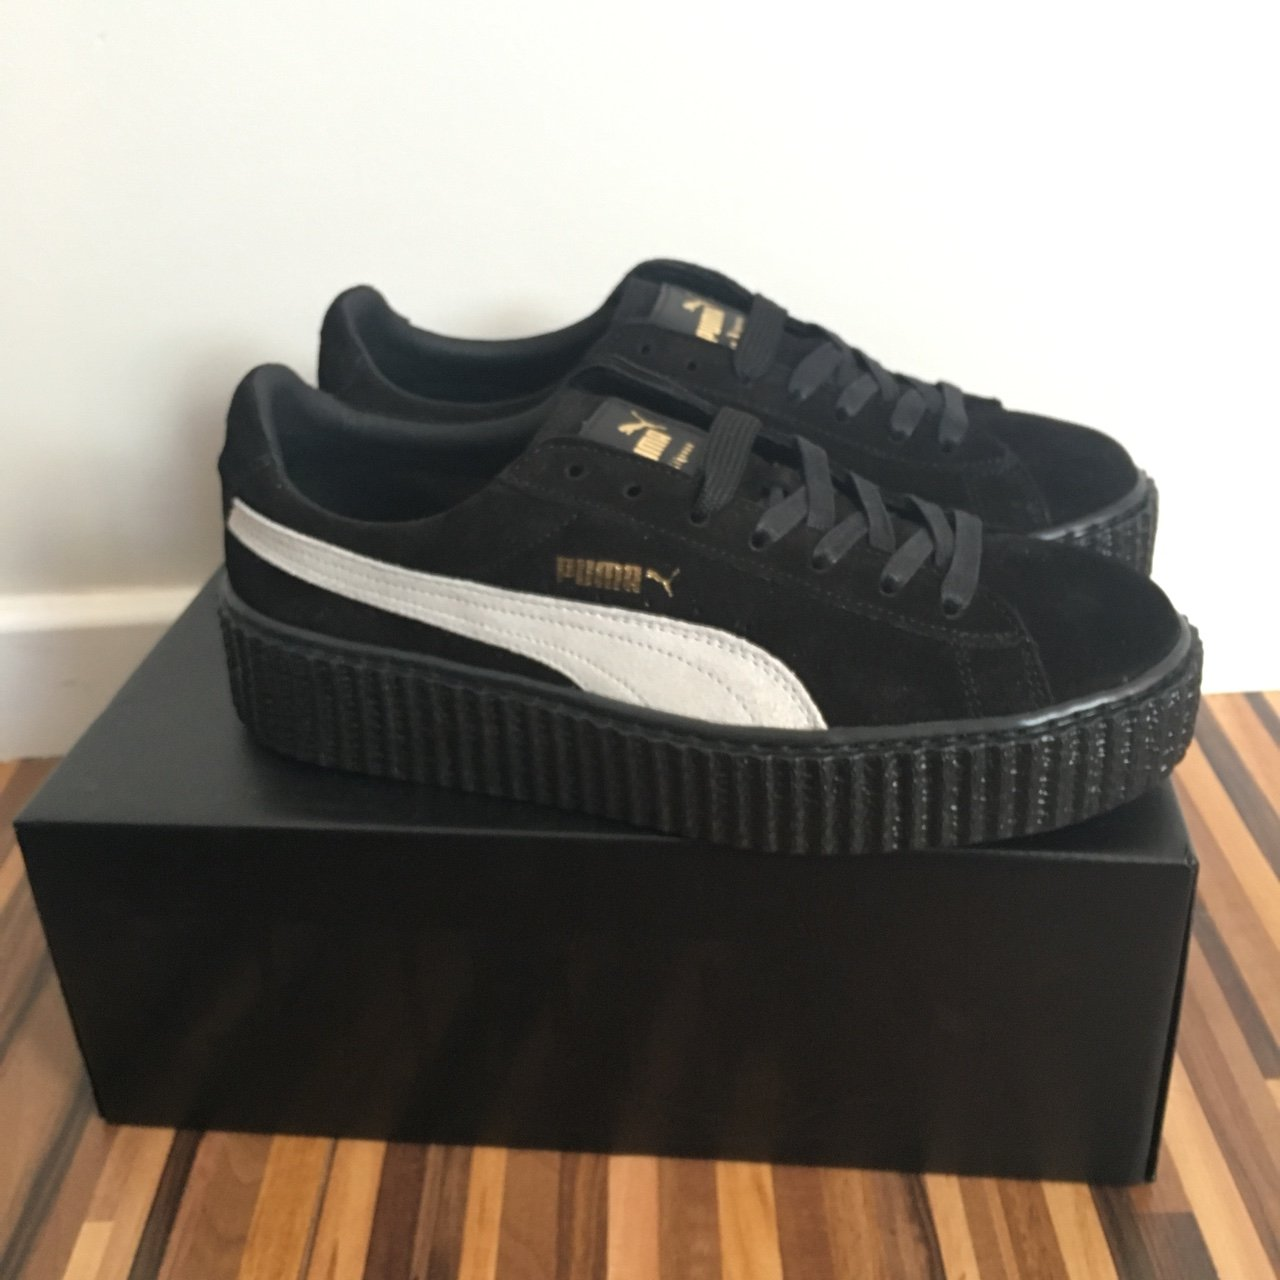 2dc9b48933ef Size 6 bought from offspring. Brand new in box with velvet - Depop